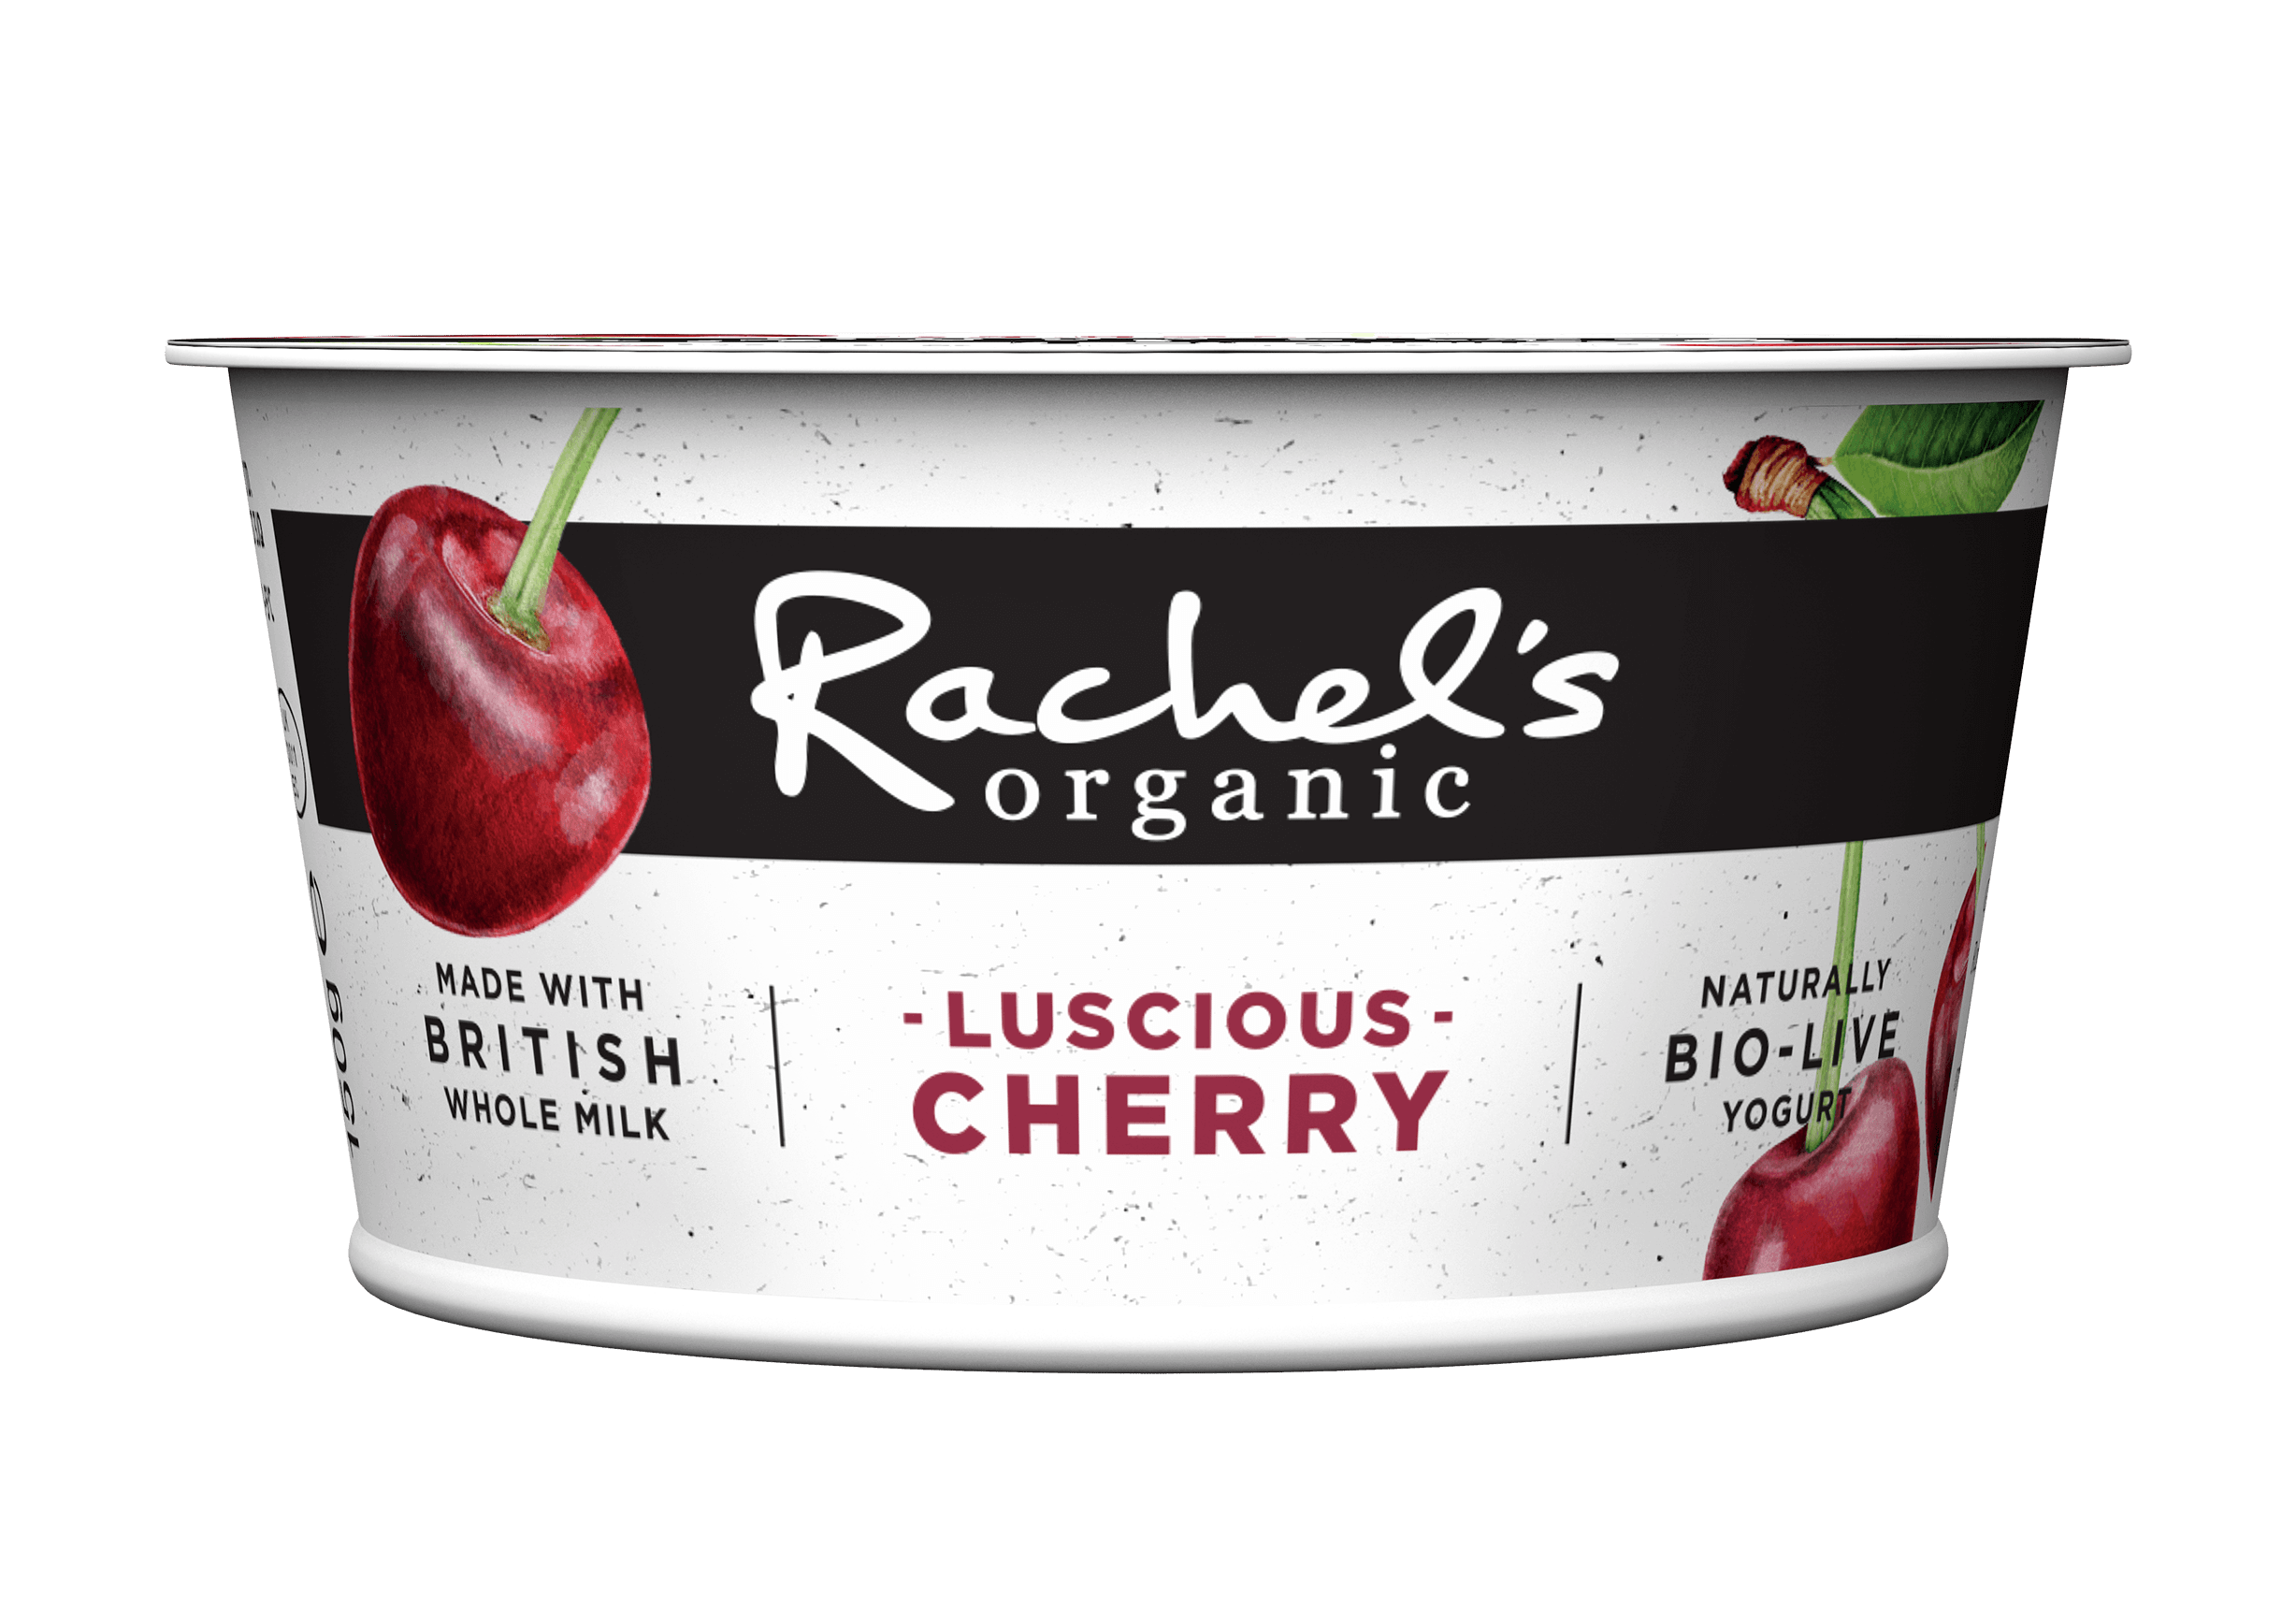 https://www.rachelsorganic.co.uk/wp-content/uploads/2019/12/5021638124451-3D-RACHELS-150G-POT-LUSCIOUS-CHERRY.png